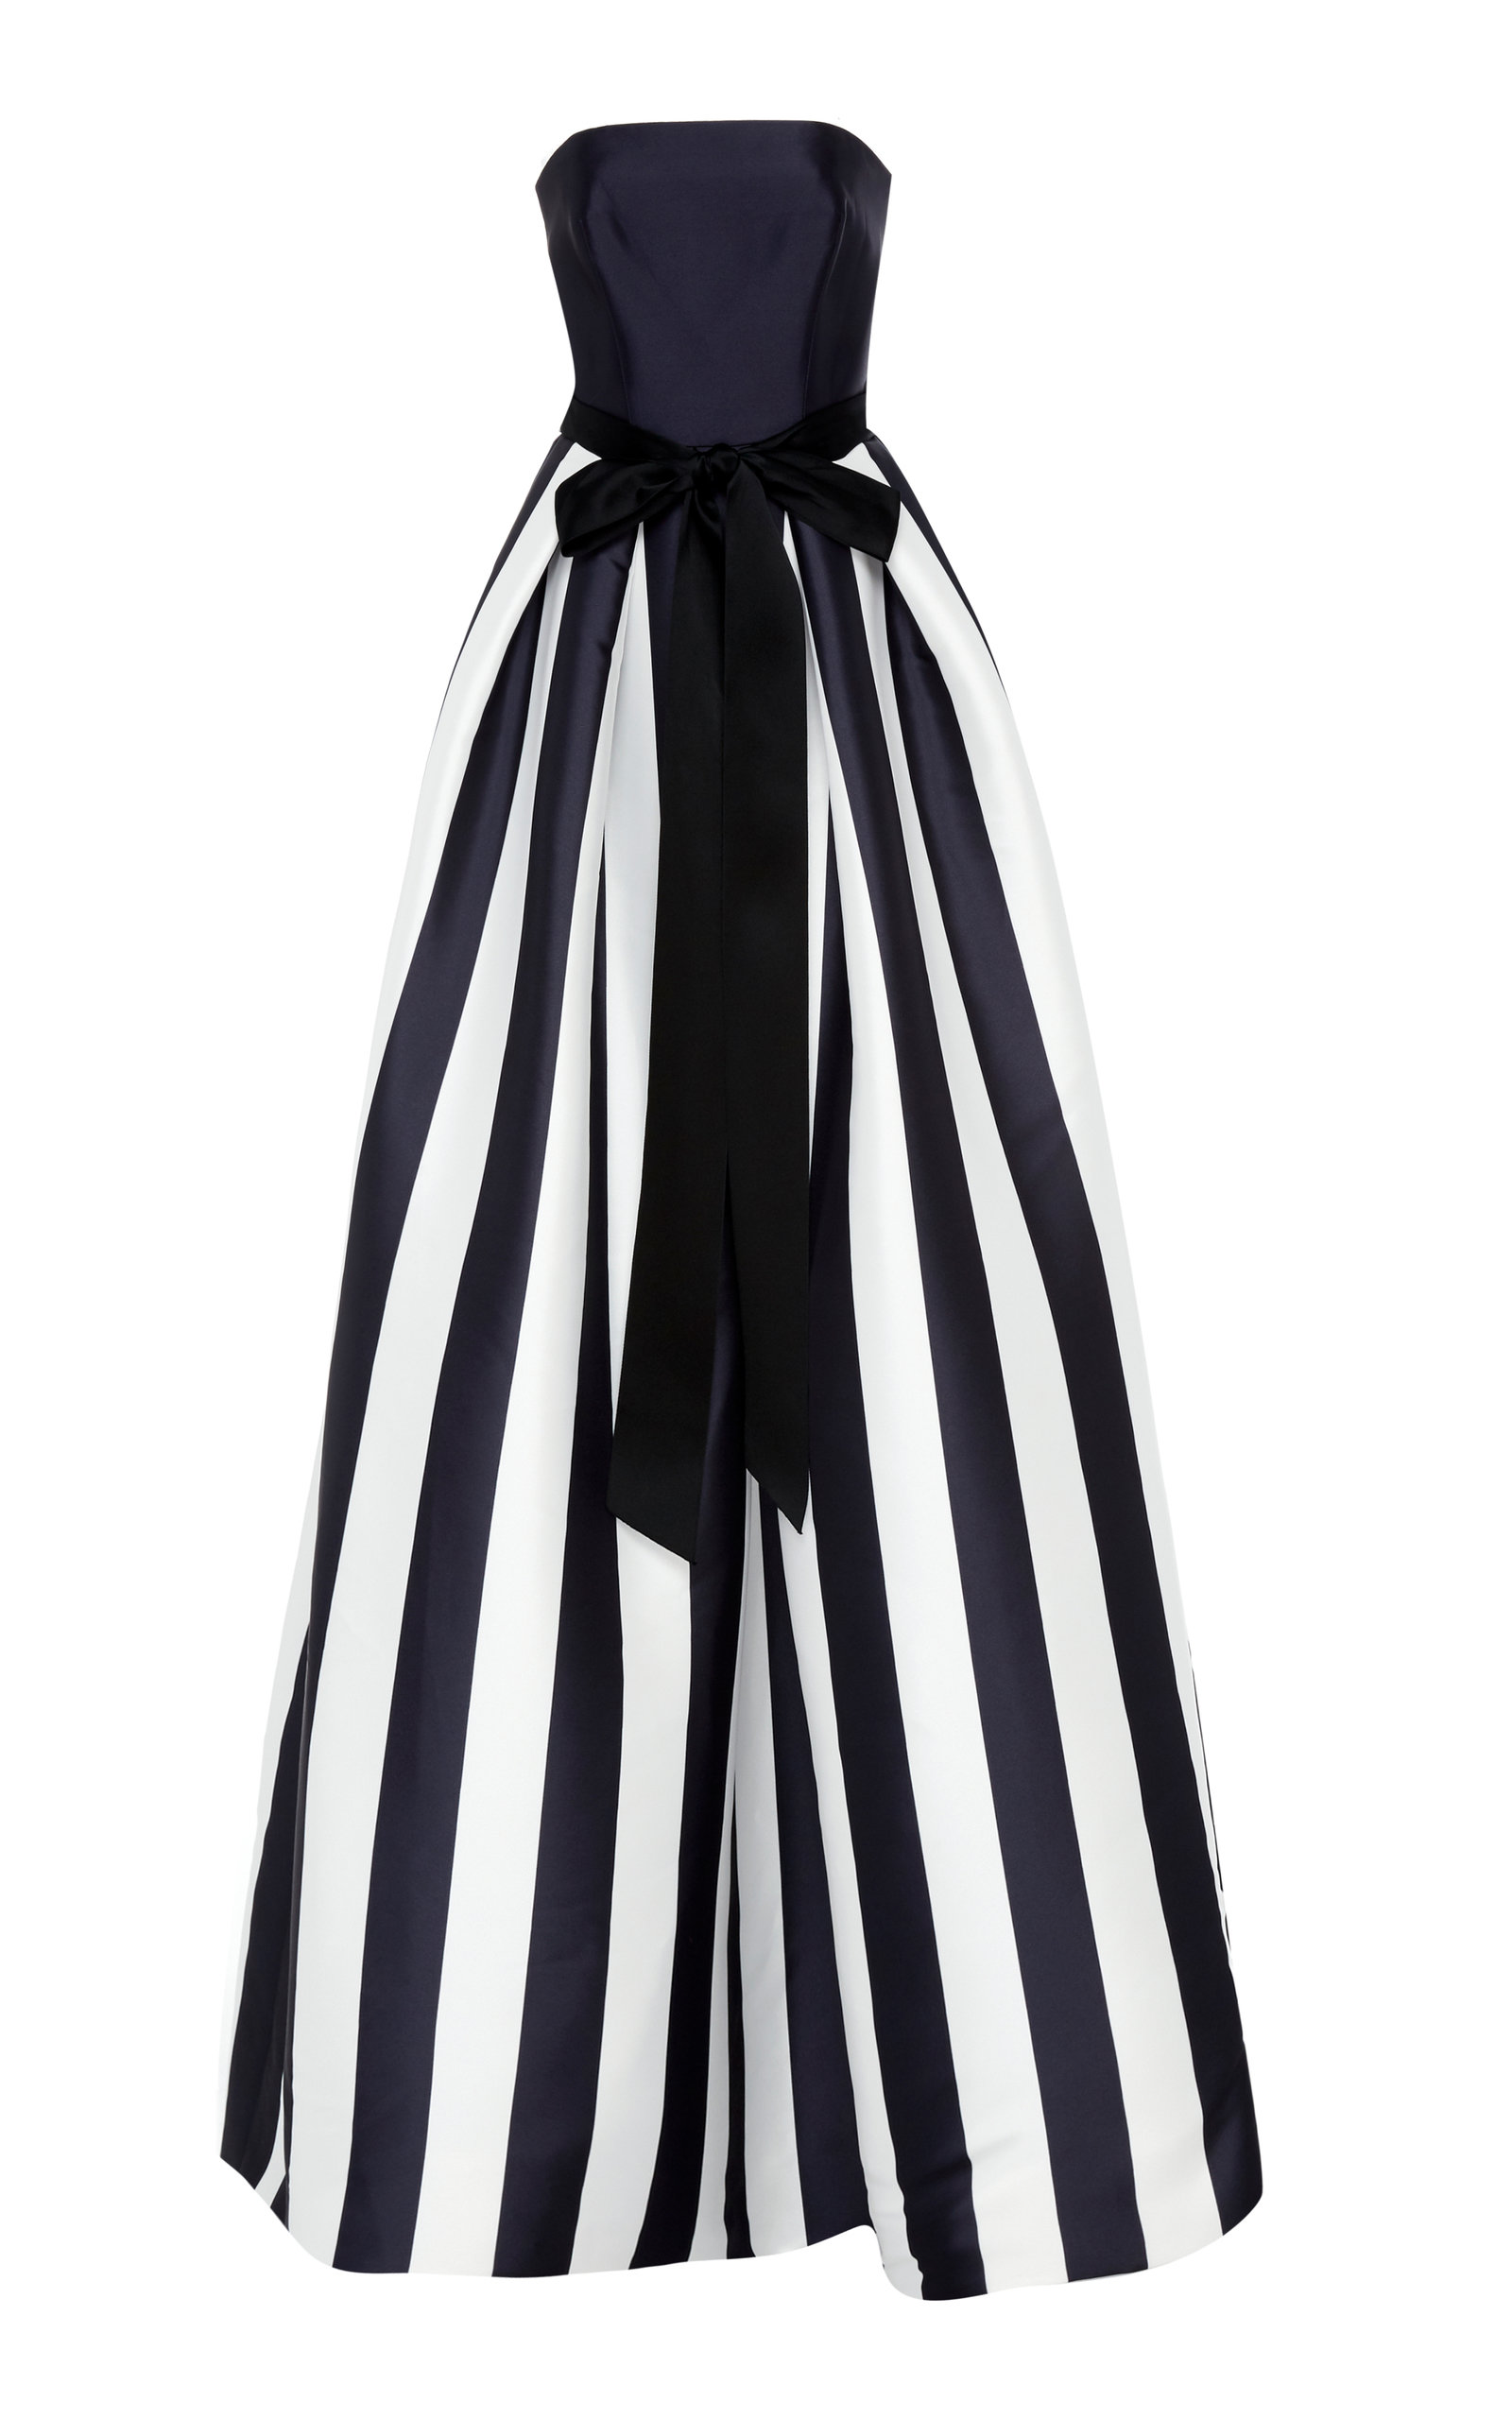 MONIQUE LHUILLIER Striped Mikado Bow-Waist Strapless Ball Gown With Full Skirt in Black/White